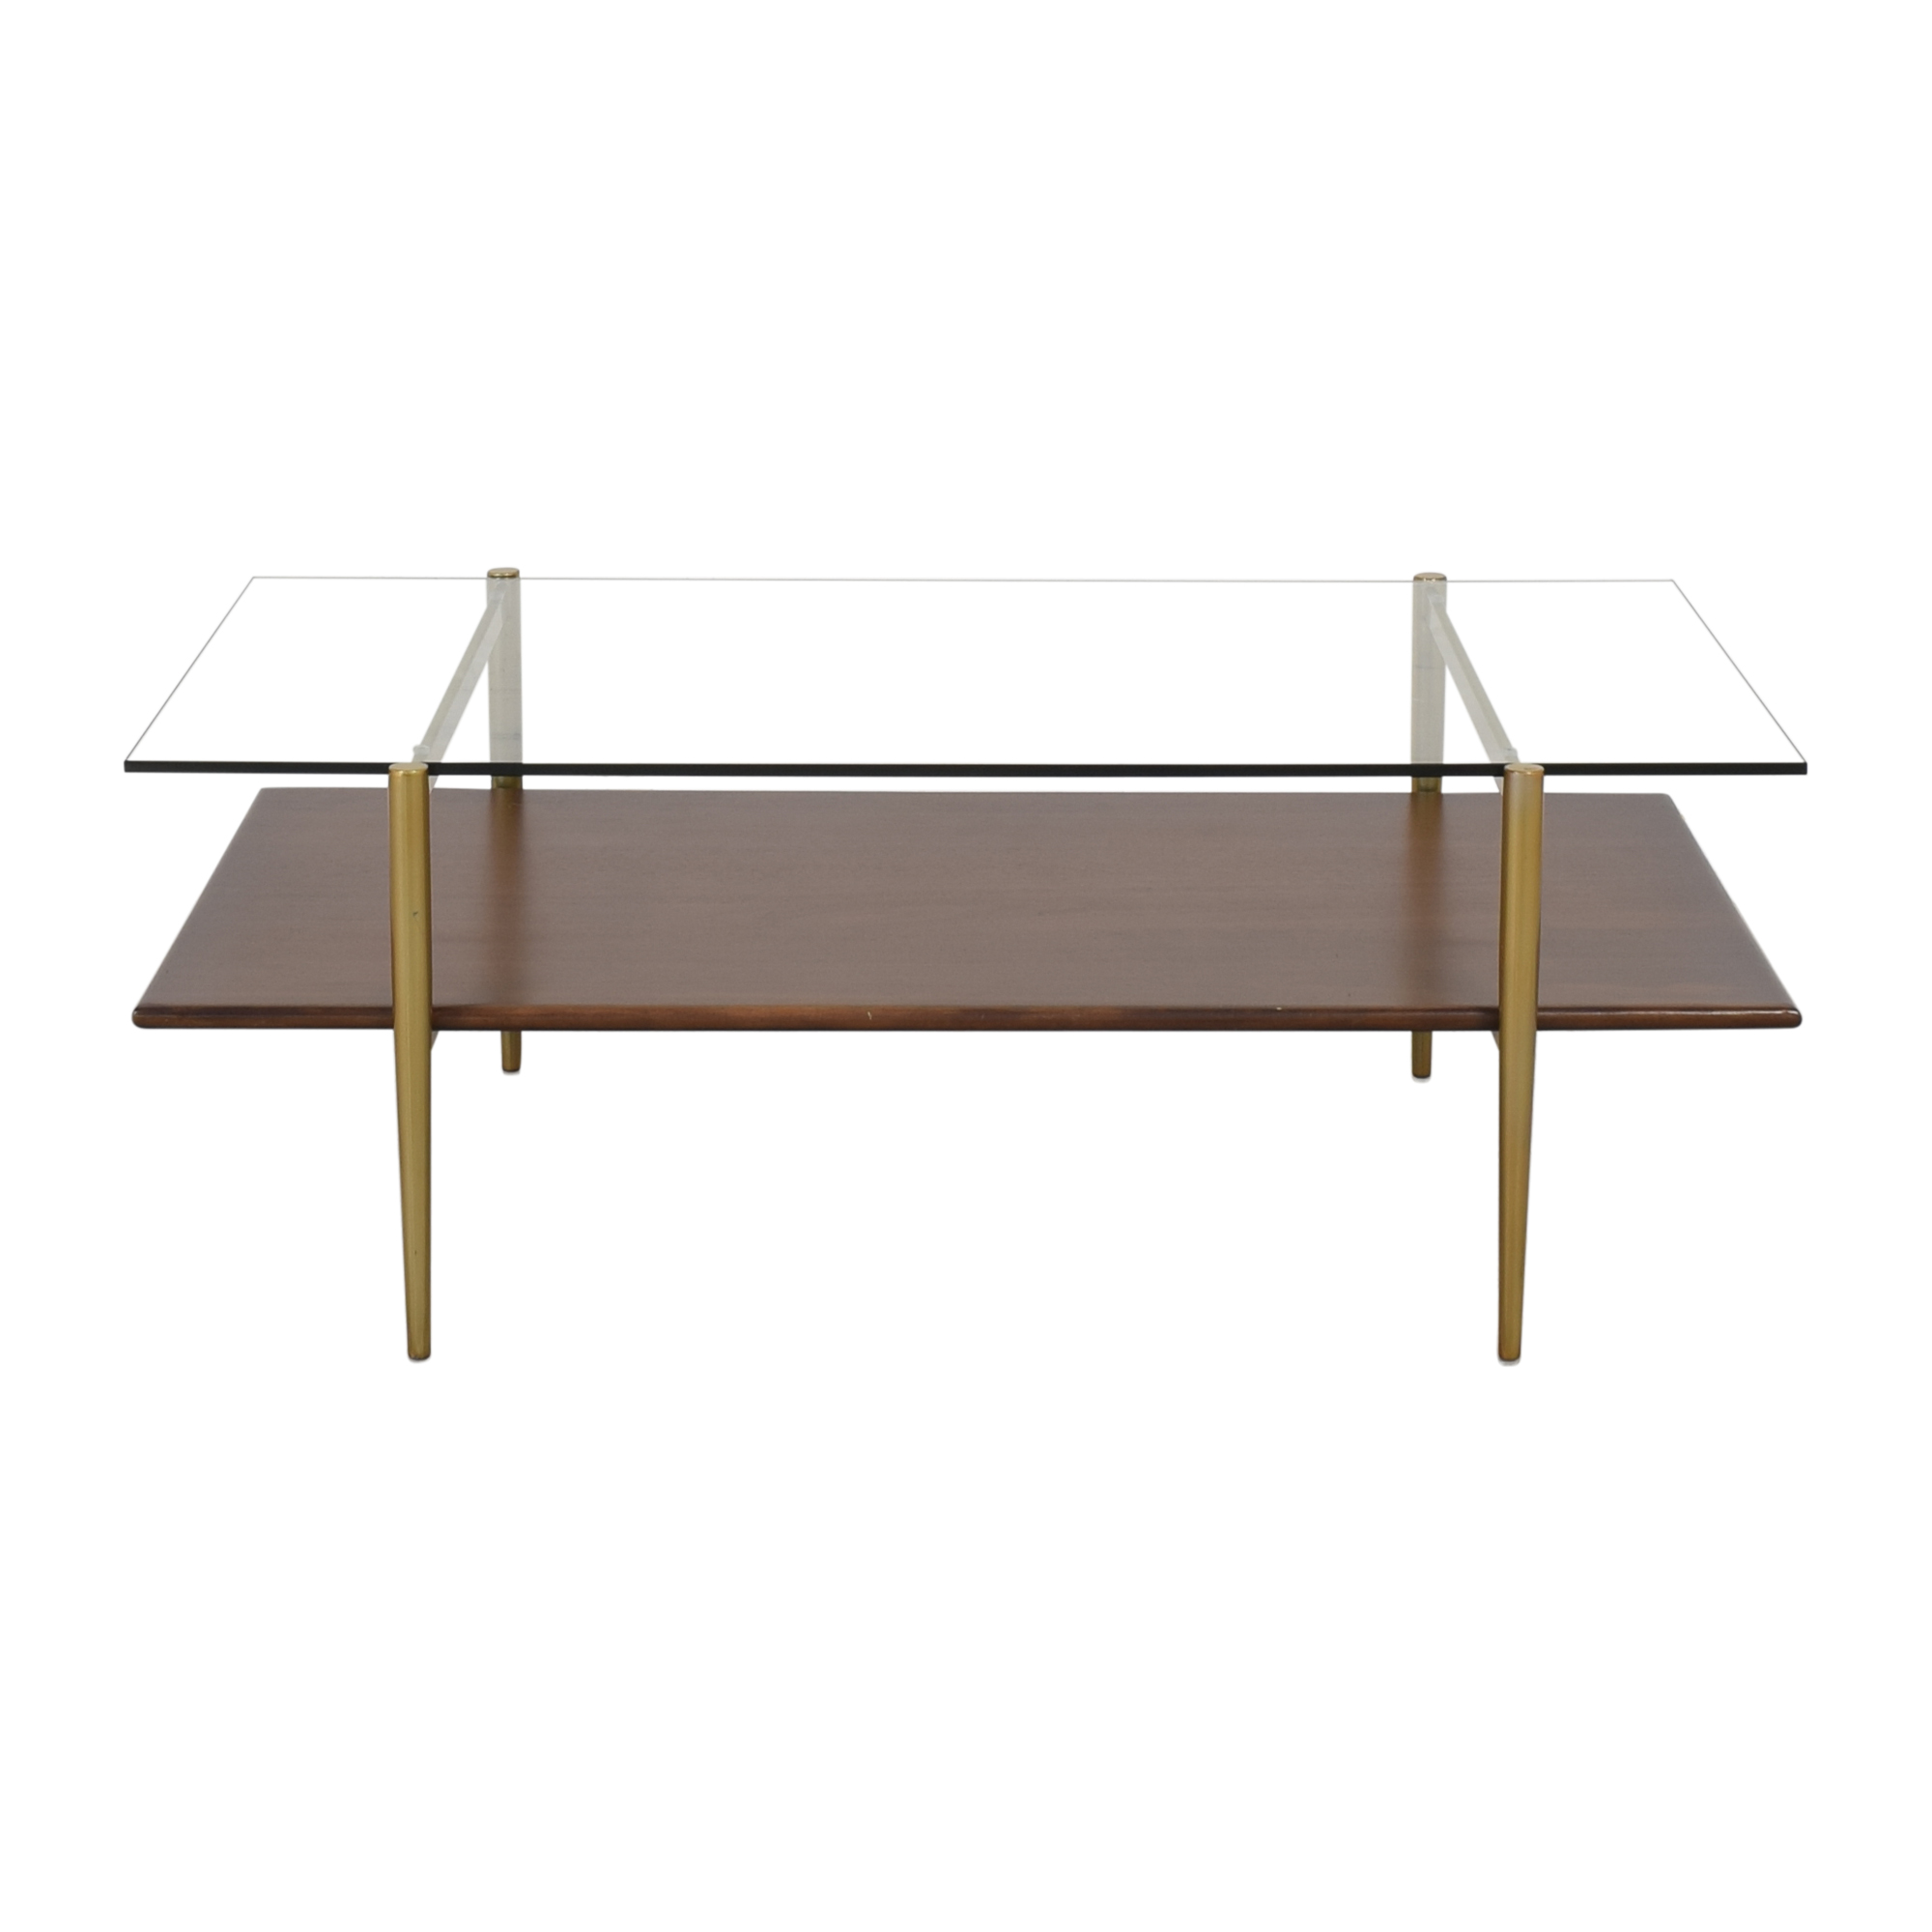 West Elm West Elm Mid-Century Art Display Coffee Table second hand